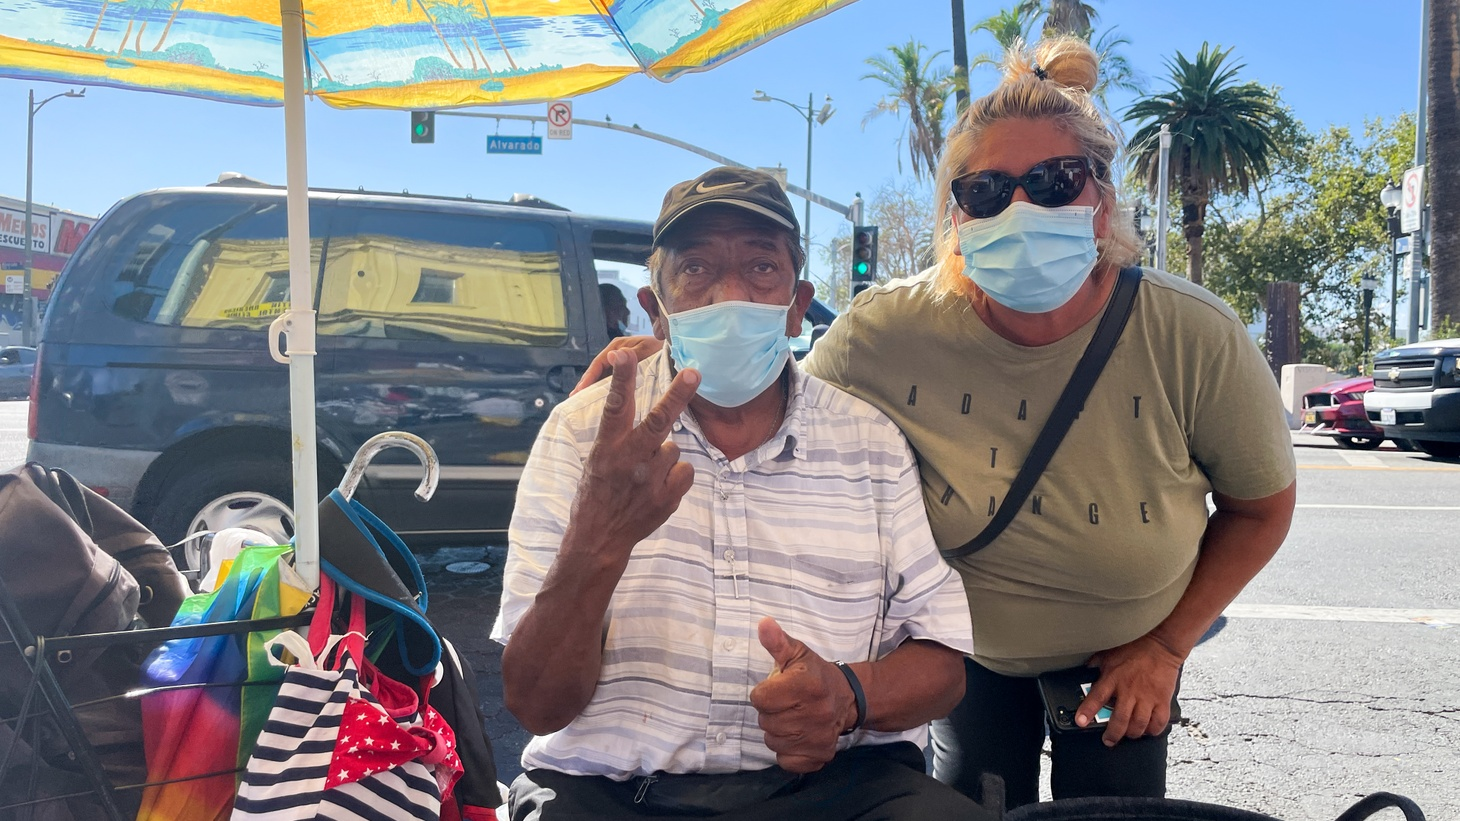 Elizabeth Medina (right) and her friend and street vending partner Victor Renteria pose for a photo as they sell electronics and other knick-knacks near MacArthur Park.